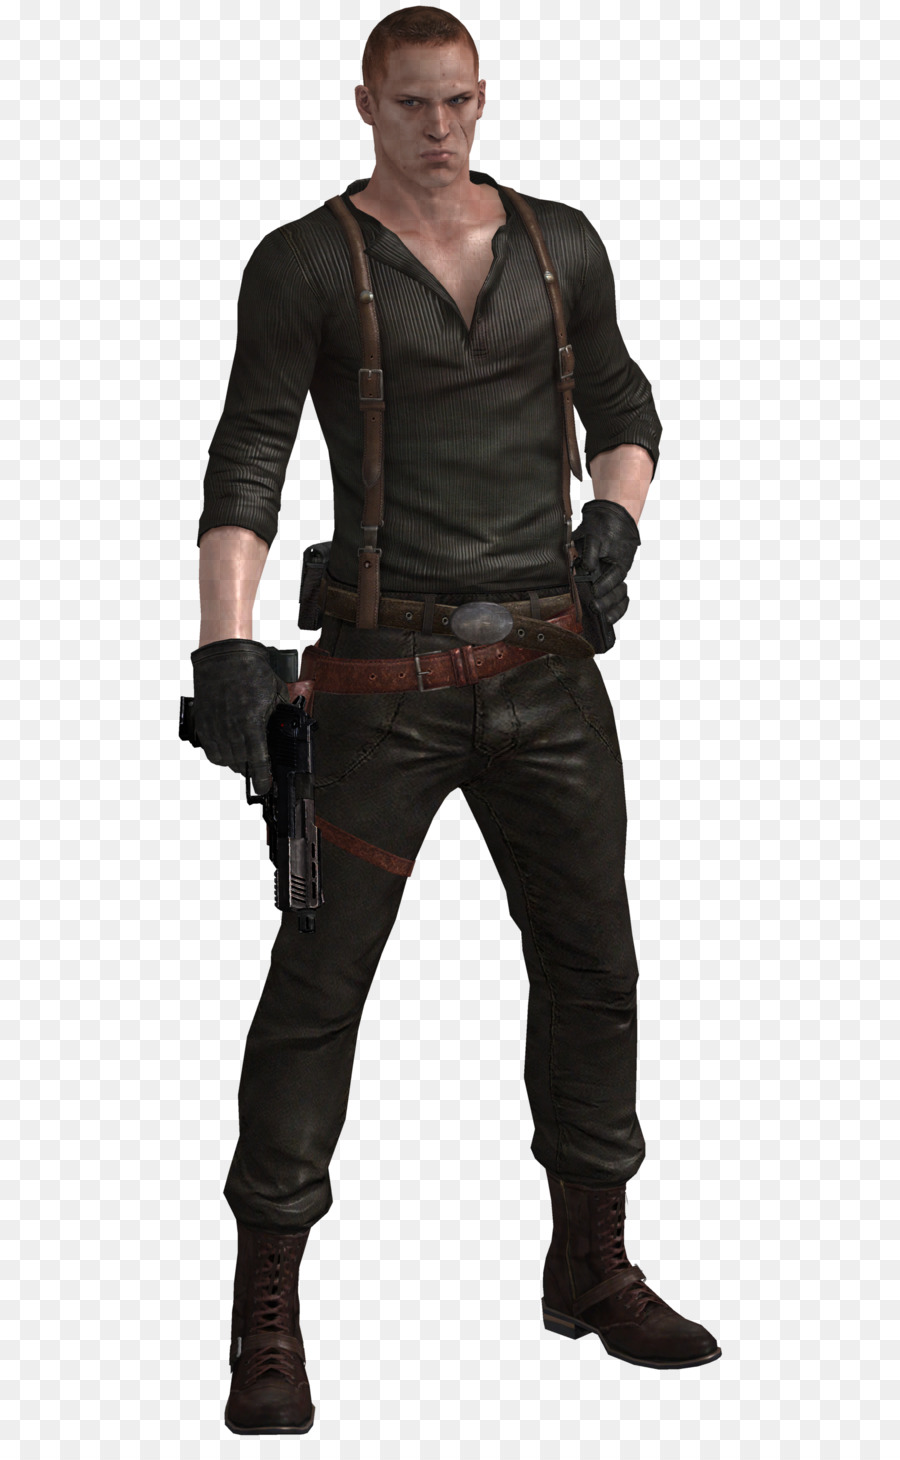 Resident Evil 6 Costume Png Download 554 1443 Free Transparent Resident Evil 6 Png Download Cleanpng Kisspng